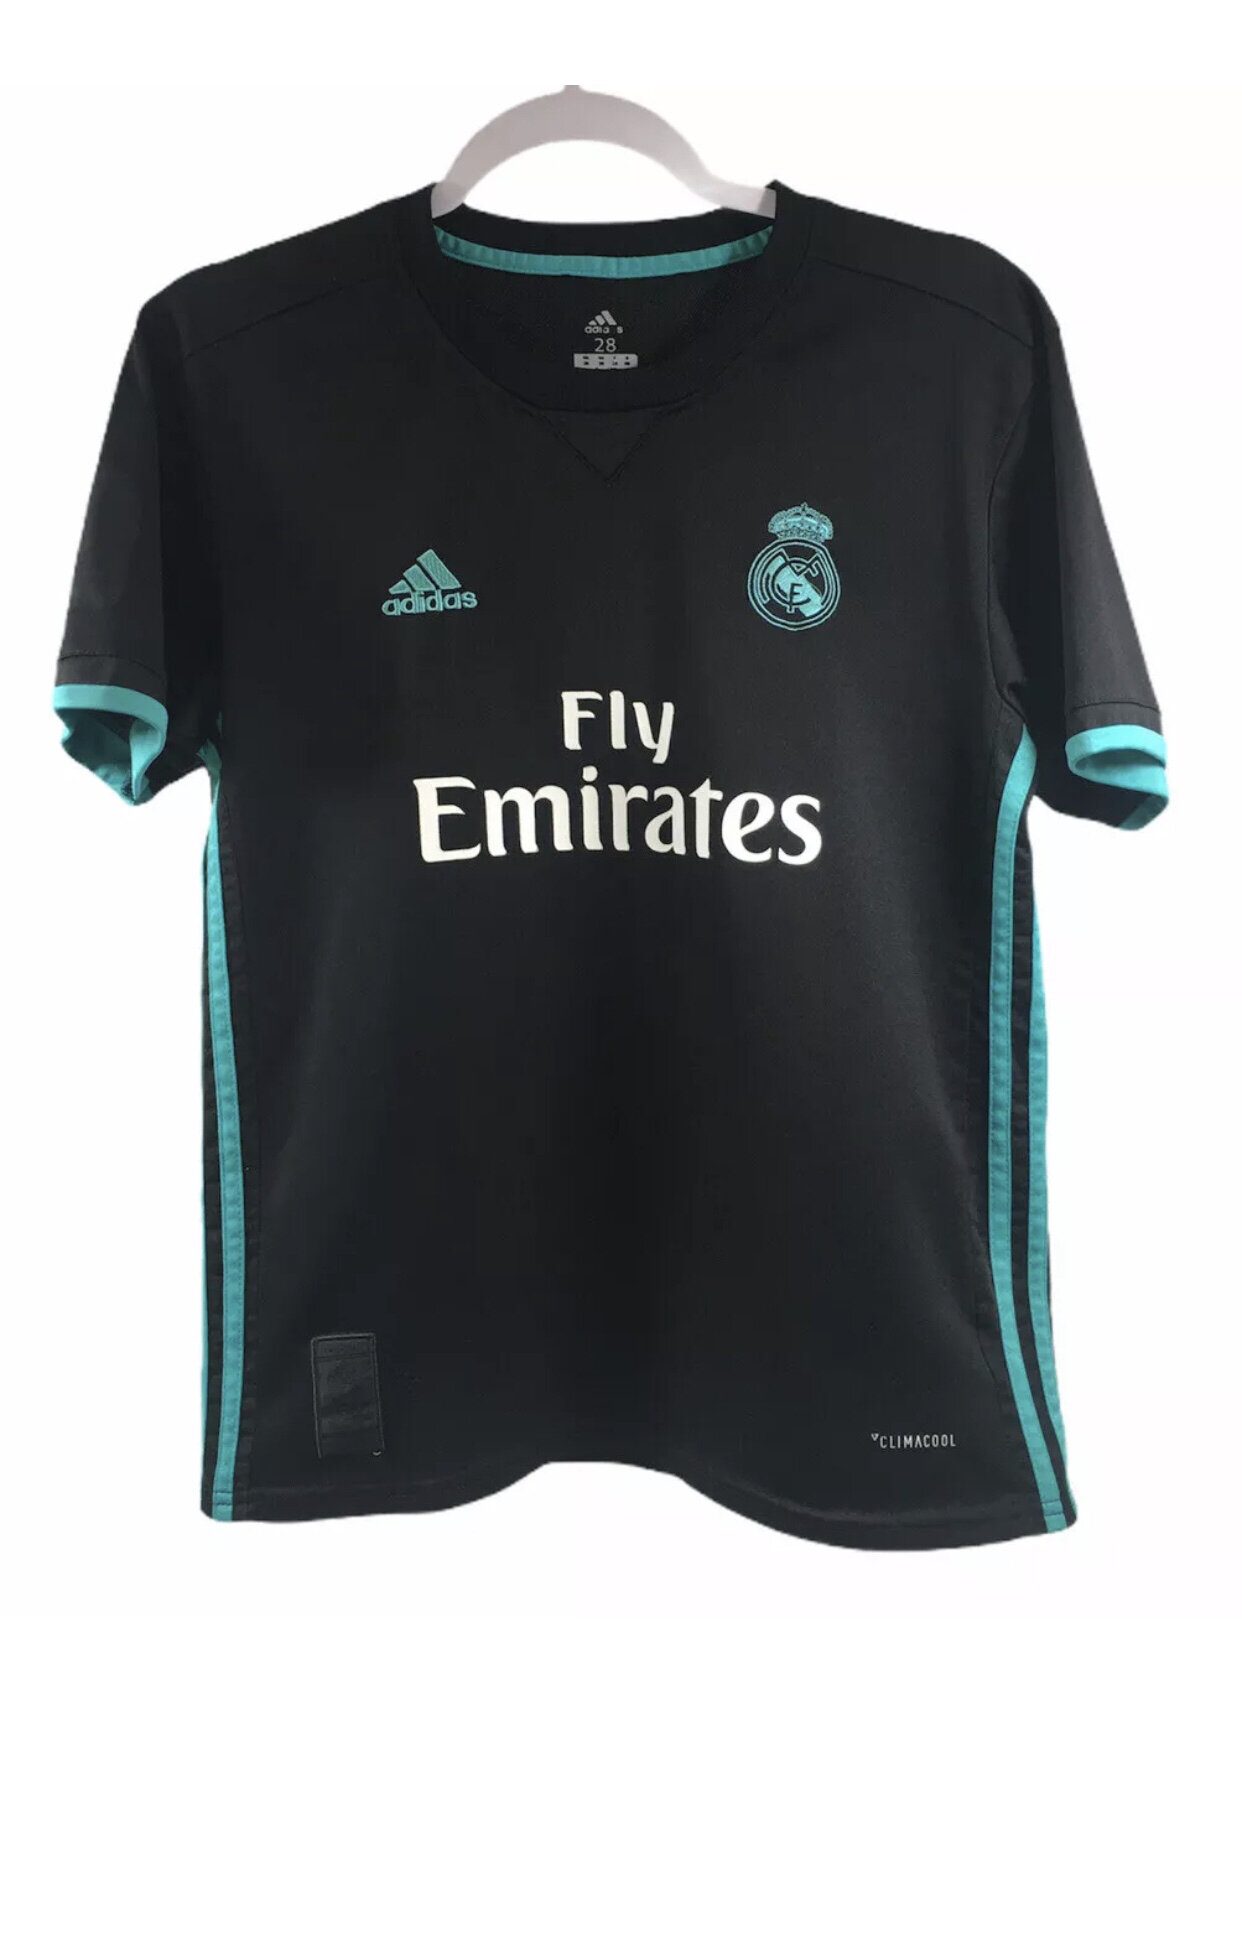 Adidas Fly Emirates Real Madrid Soccer Jersey Black/Teal Size 28